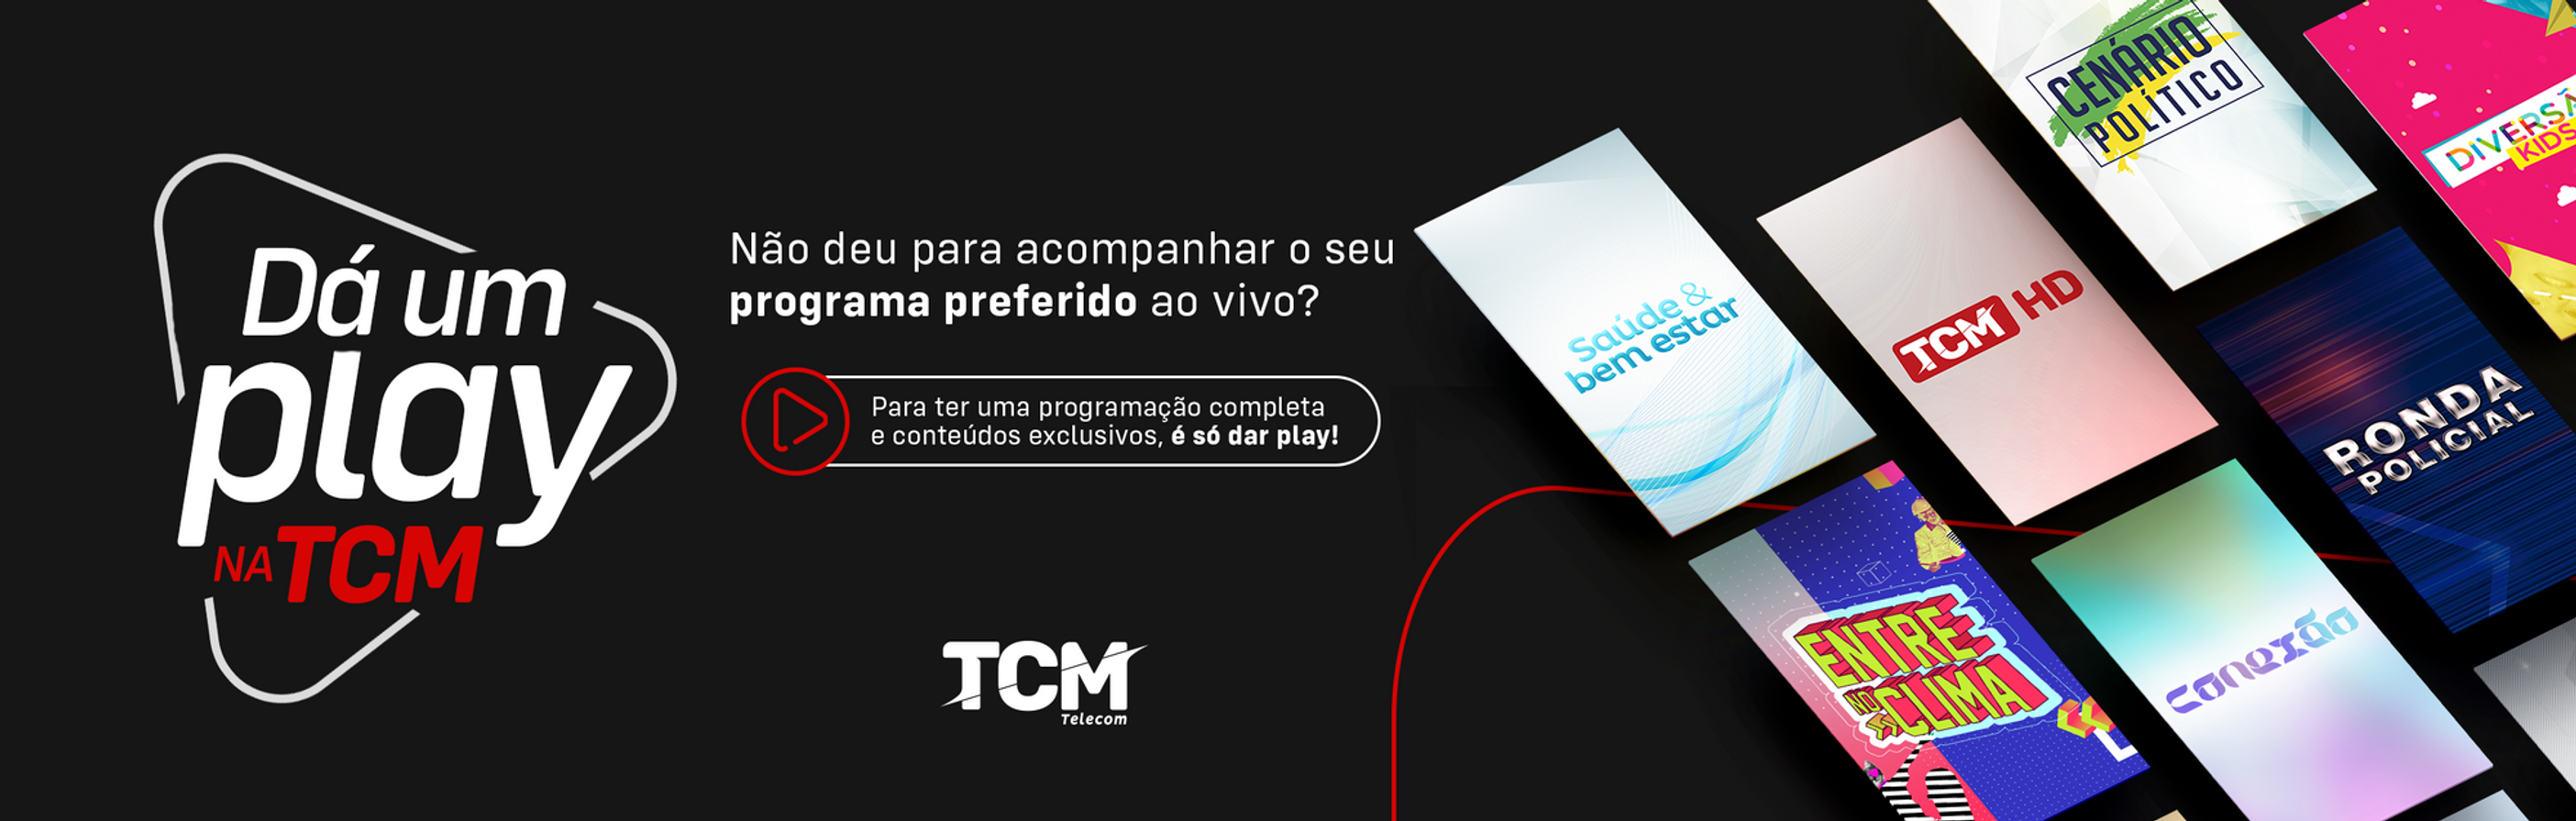 tcmcabo_banner_1_tipo2.png